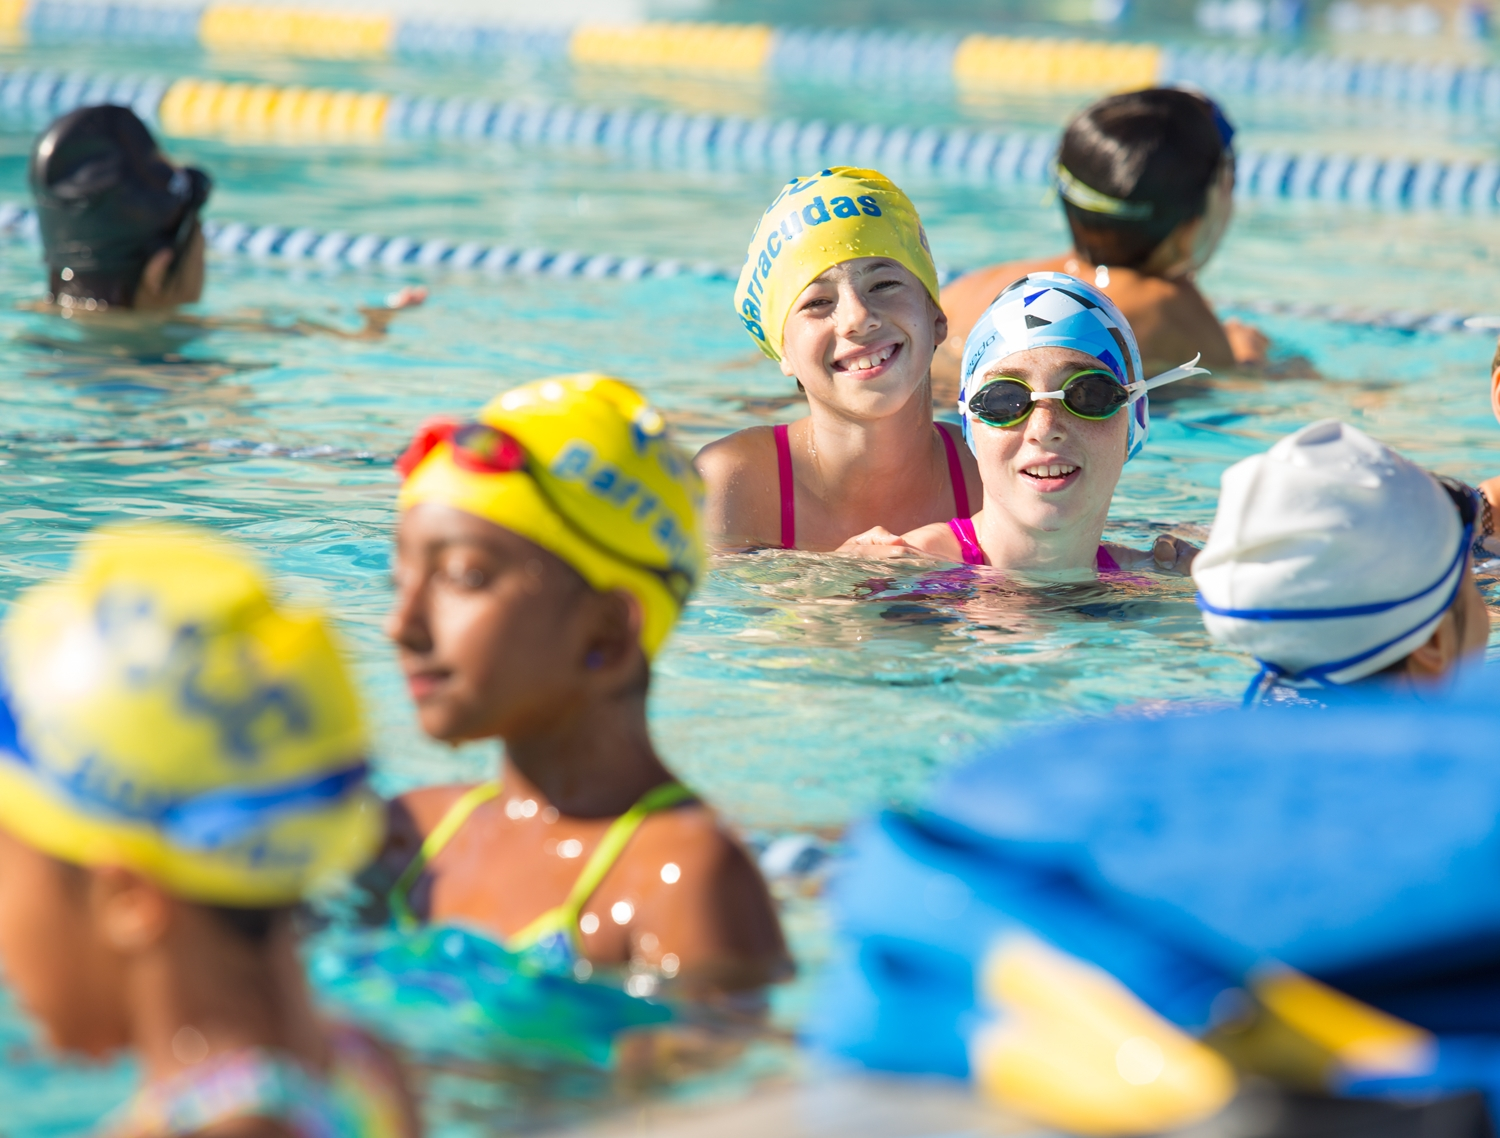 Girls smiling in the PJCC outdoor pool wearing caps and goggles